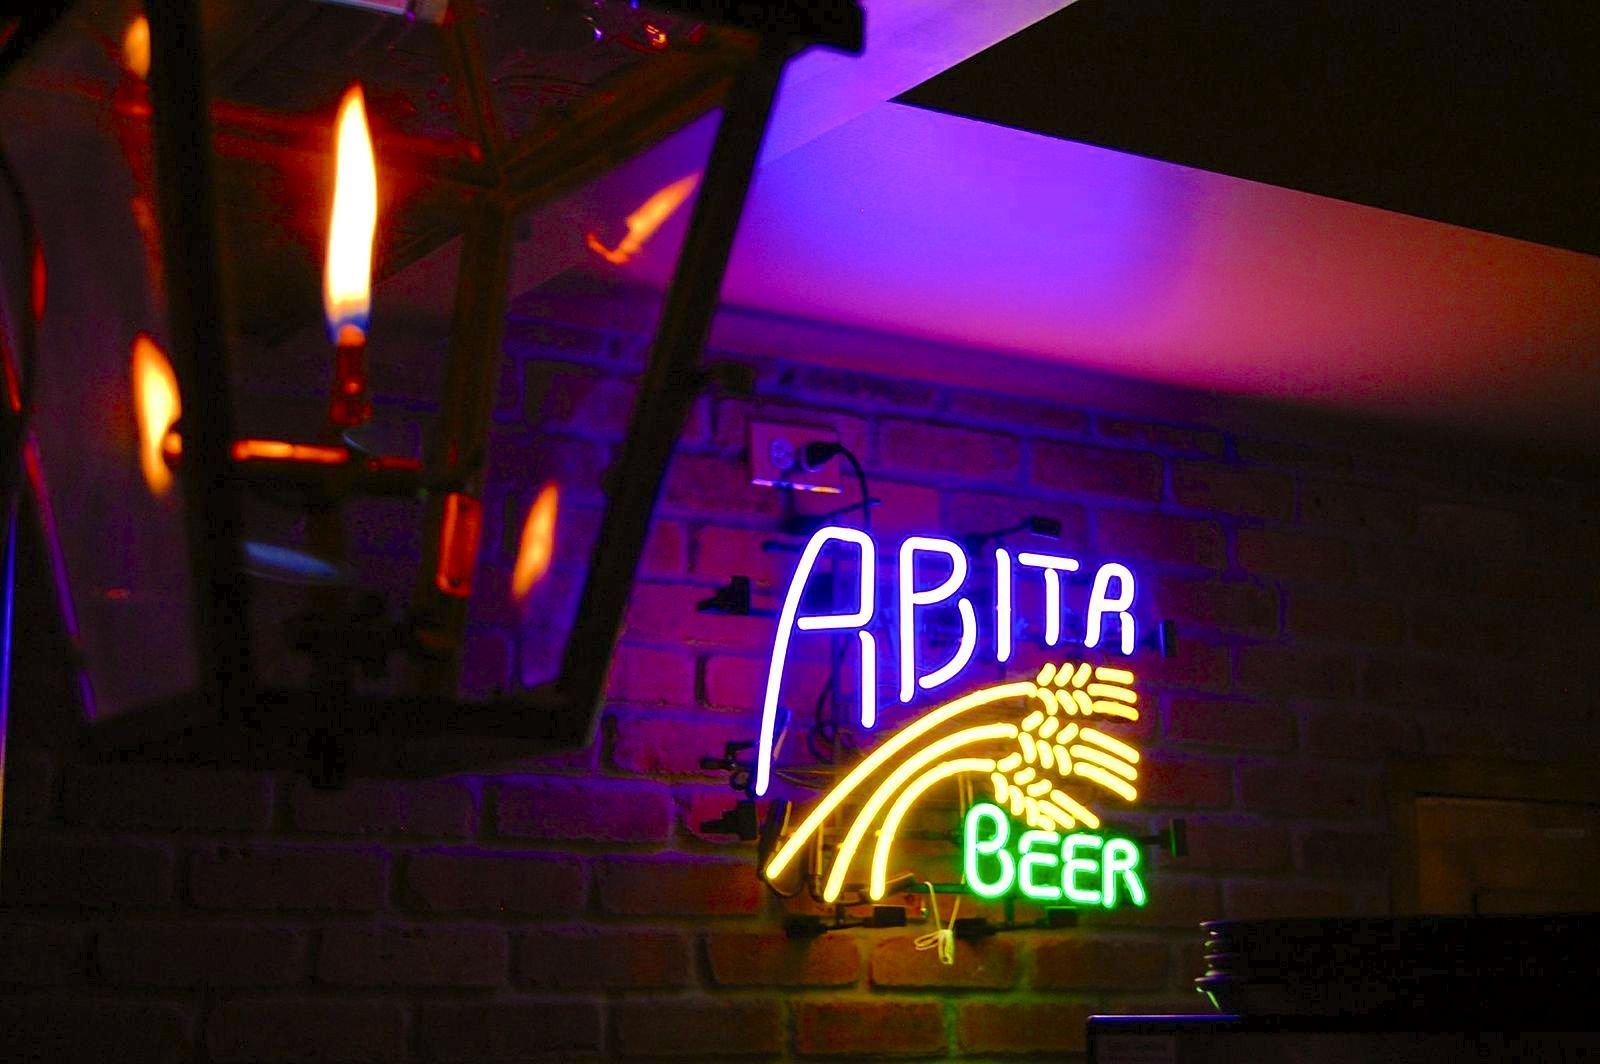 "New Abita Beer Bar Pub Neon Sign 24""x20"" Ship From USA"